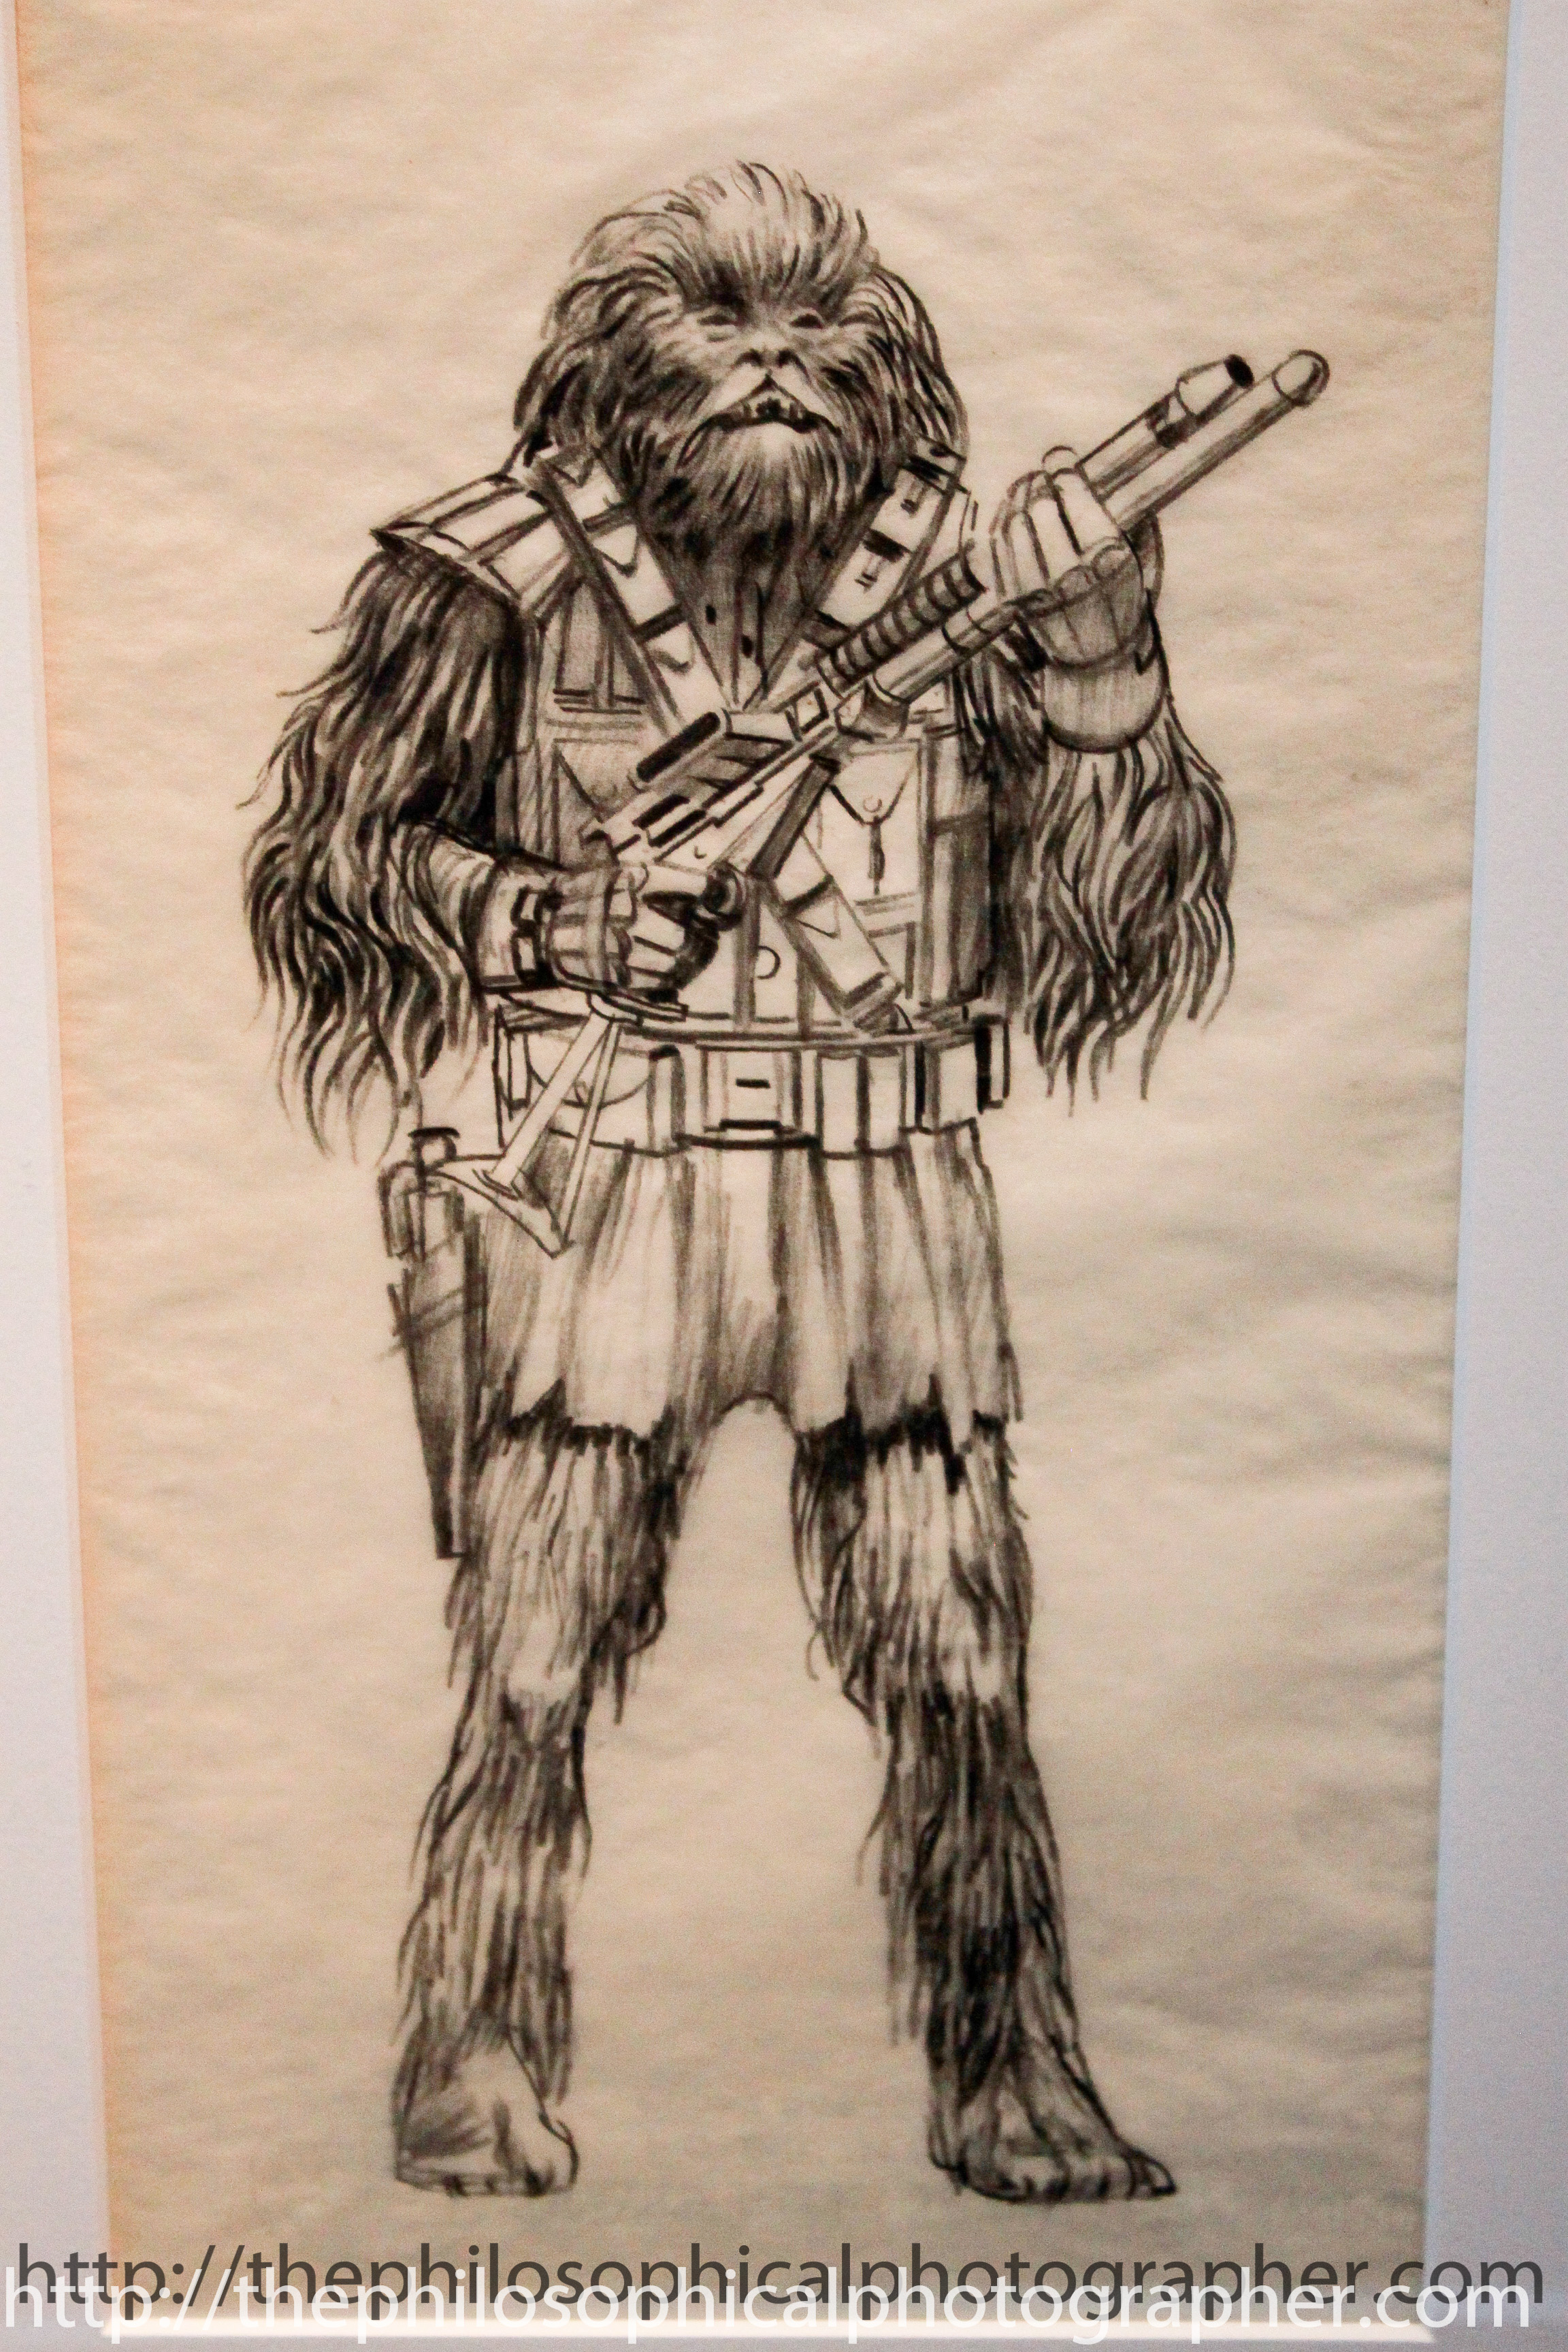 Chewbacca, Early Concept with Tunic